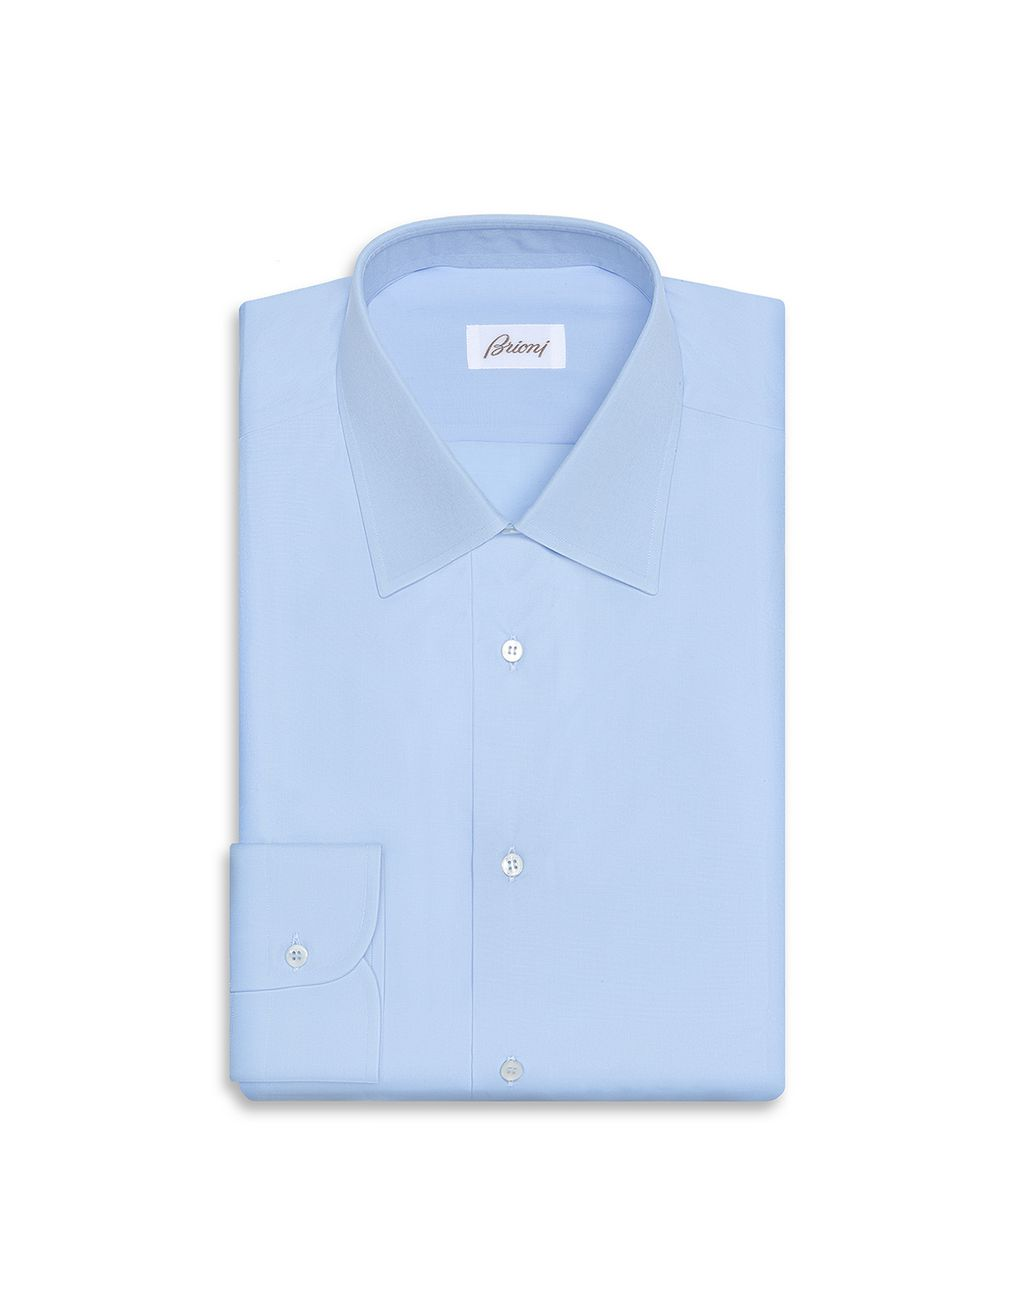 BRIONI 'Essential' Light Blue Formal Shirt Formal shirt Man f